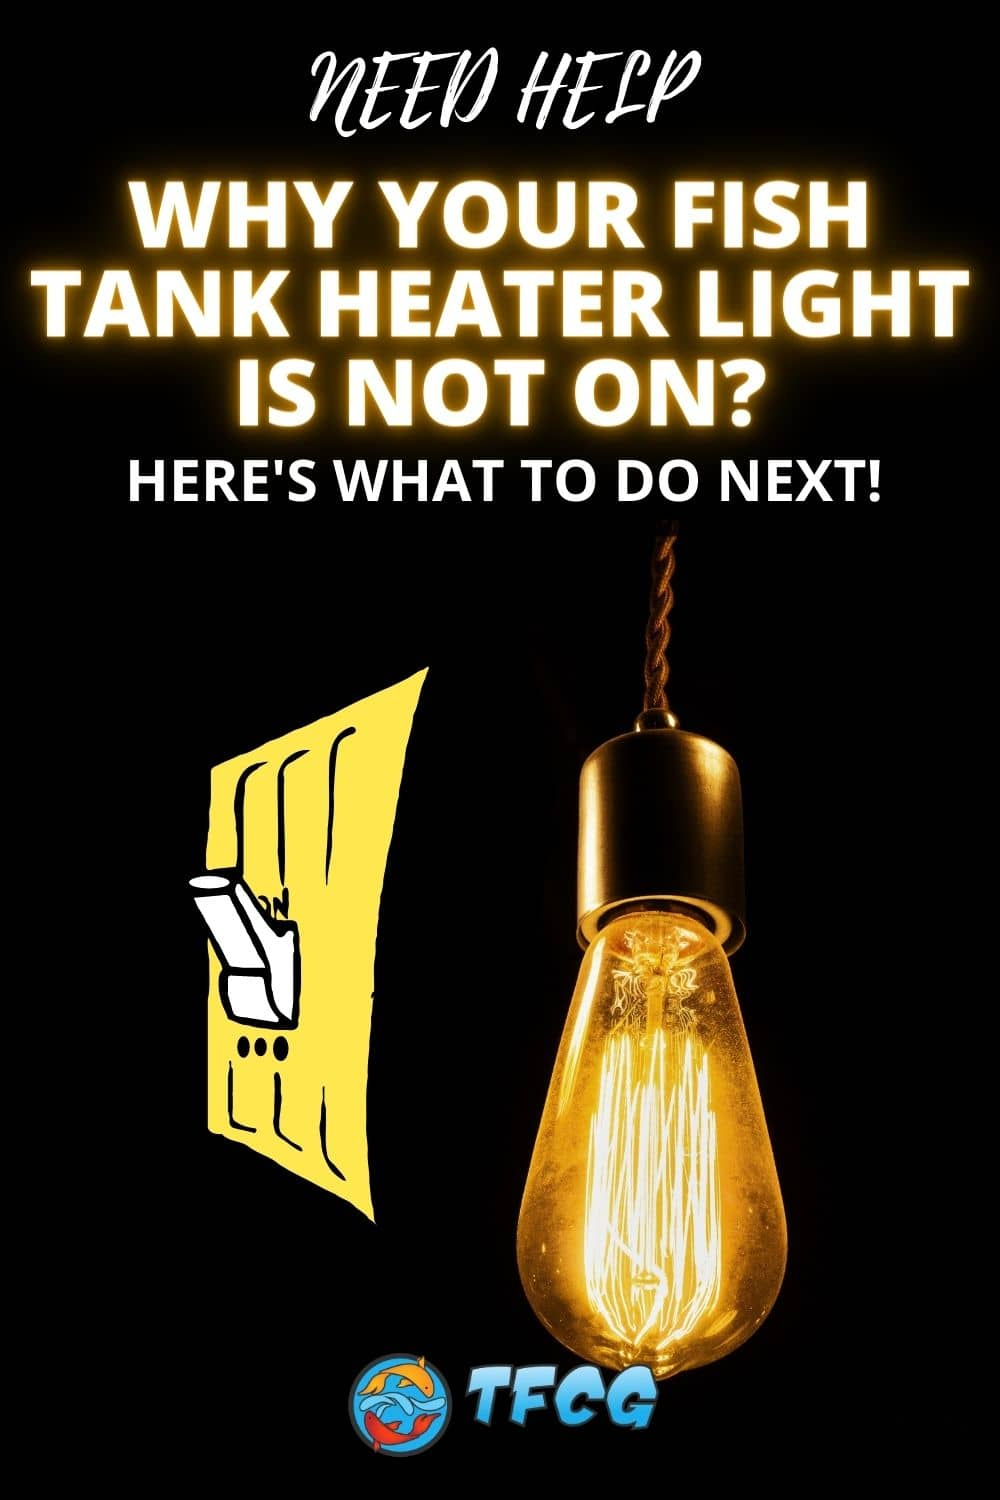 Why Your Fish Tank Heater Light Is Not On